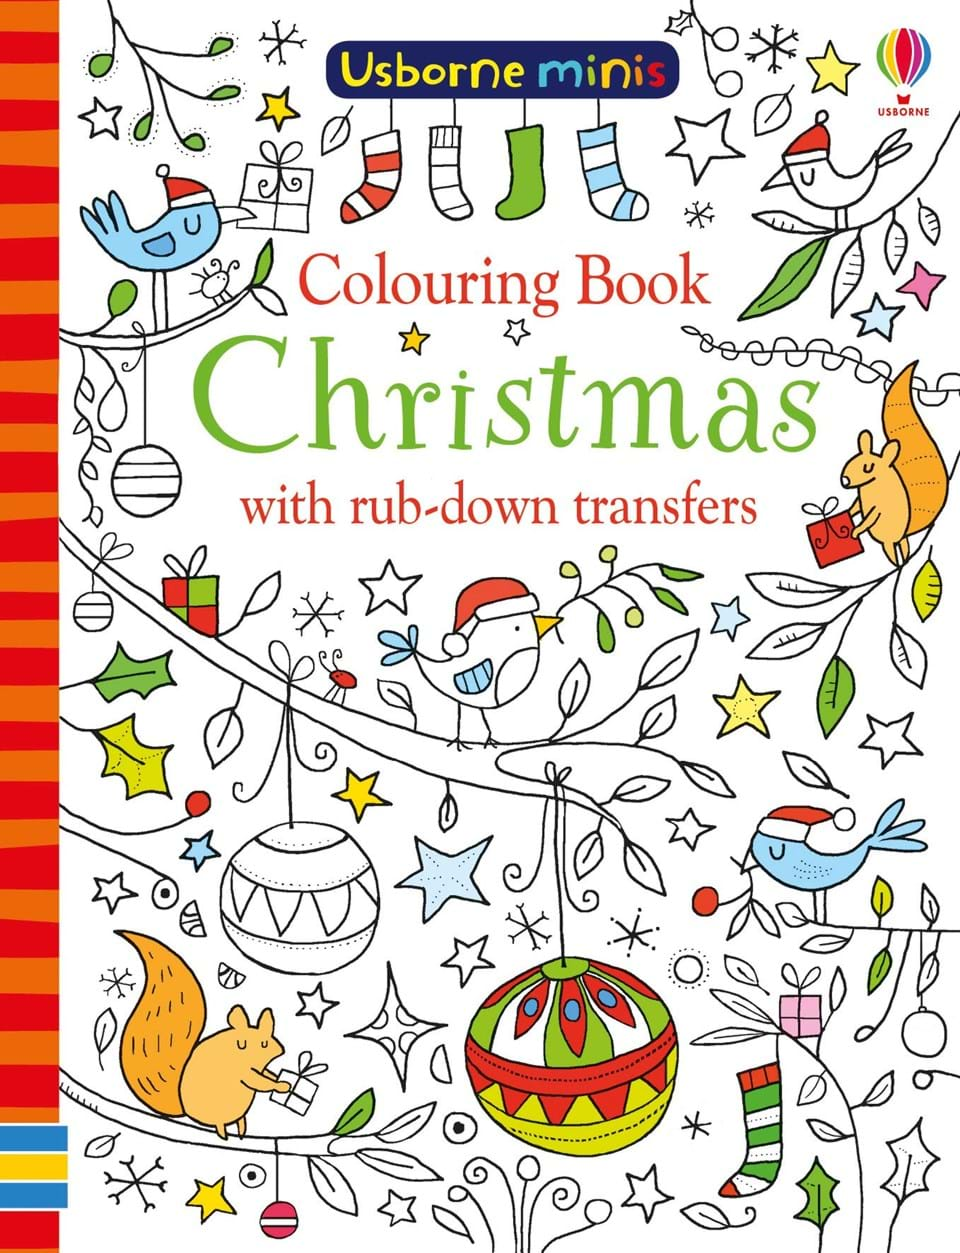 """Colouring book Christmas with rub-down transfers"""" at Usborne Books ..."""